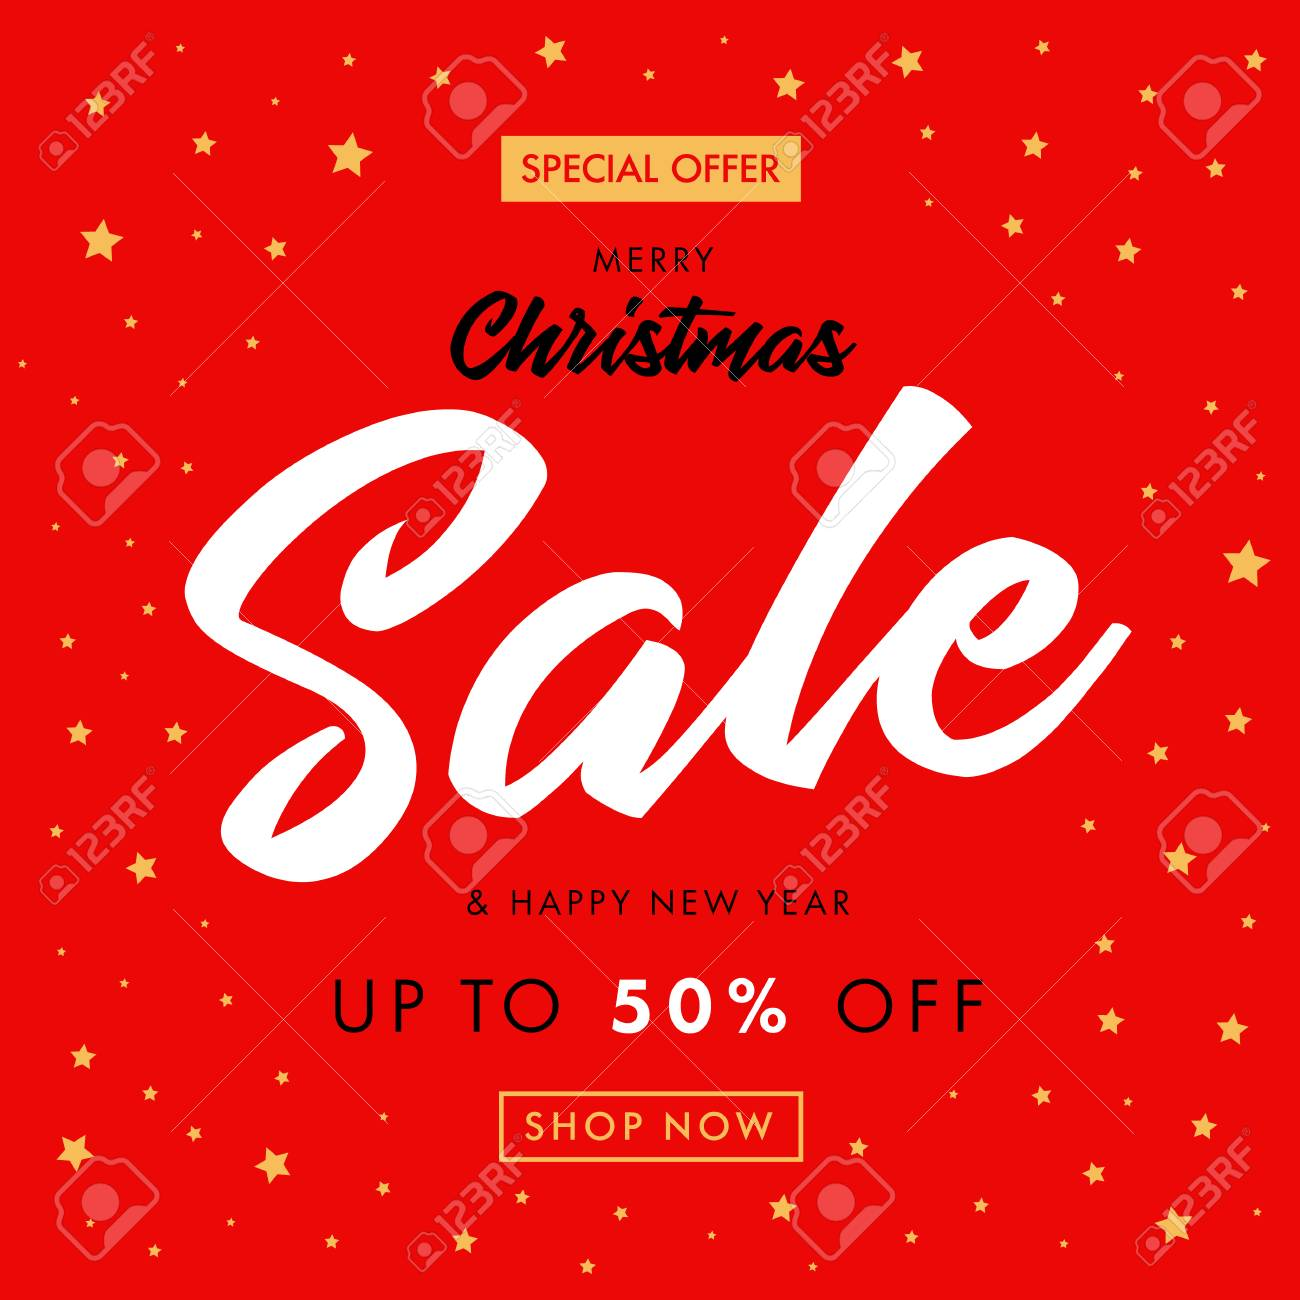 calligraphy christmas sale happy new year red banner merry christmas sale with a special